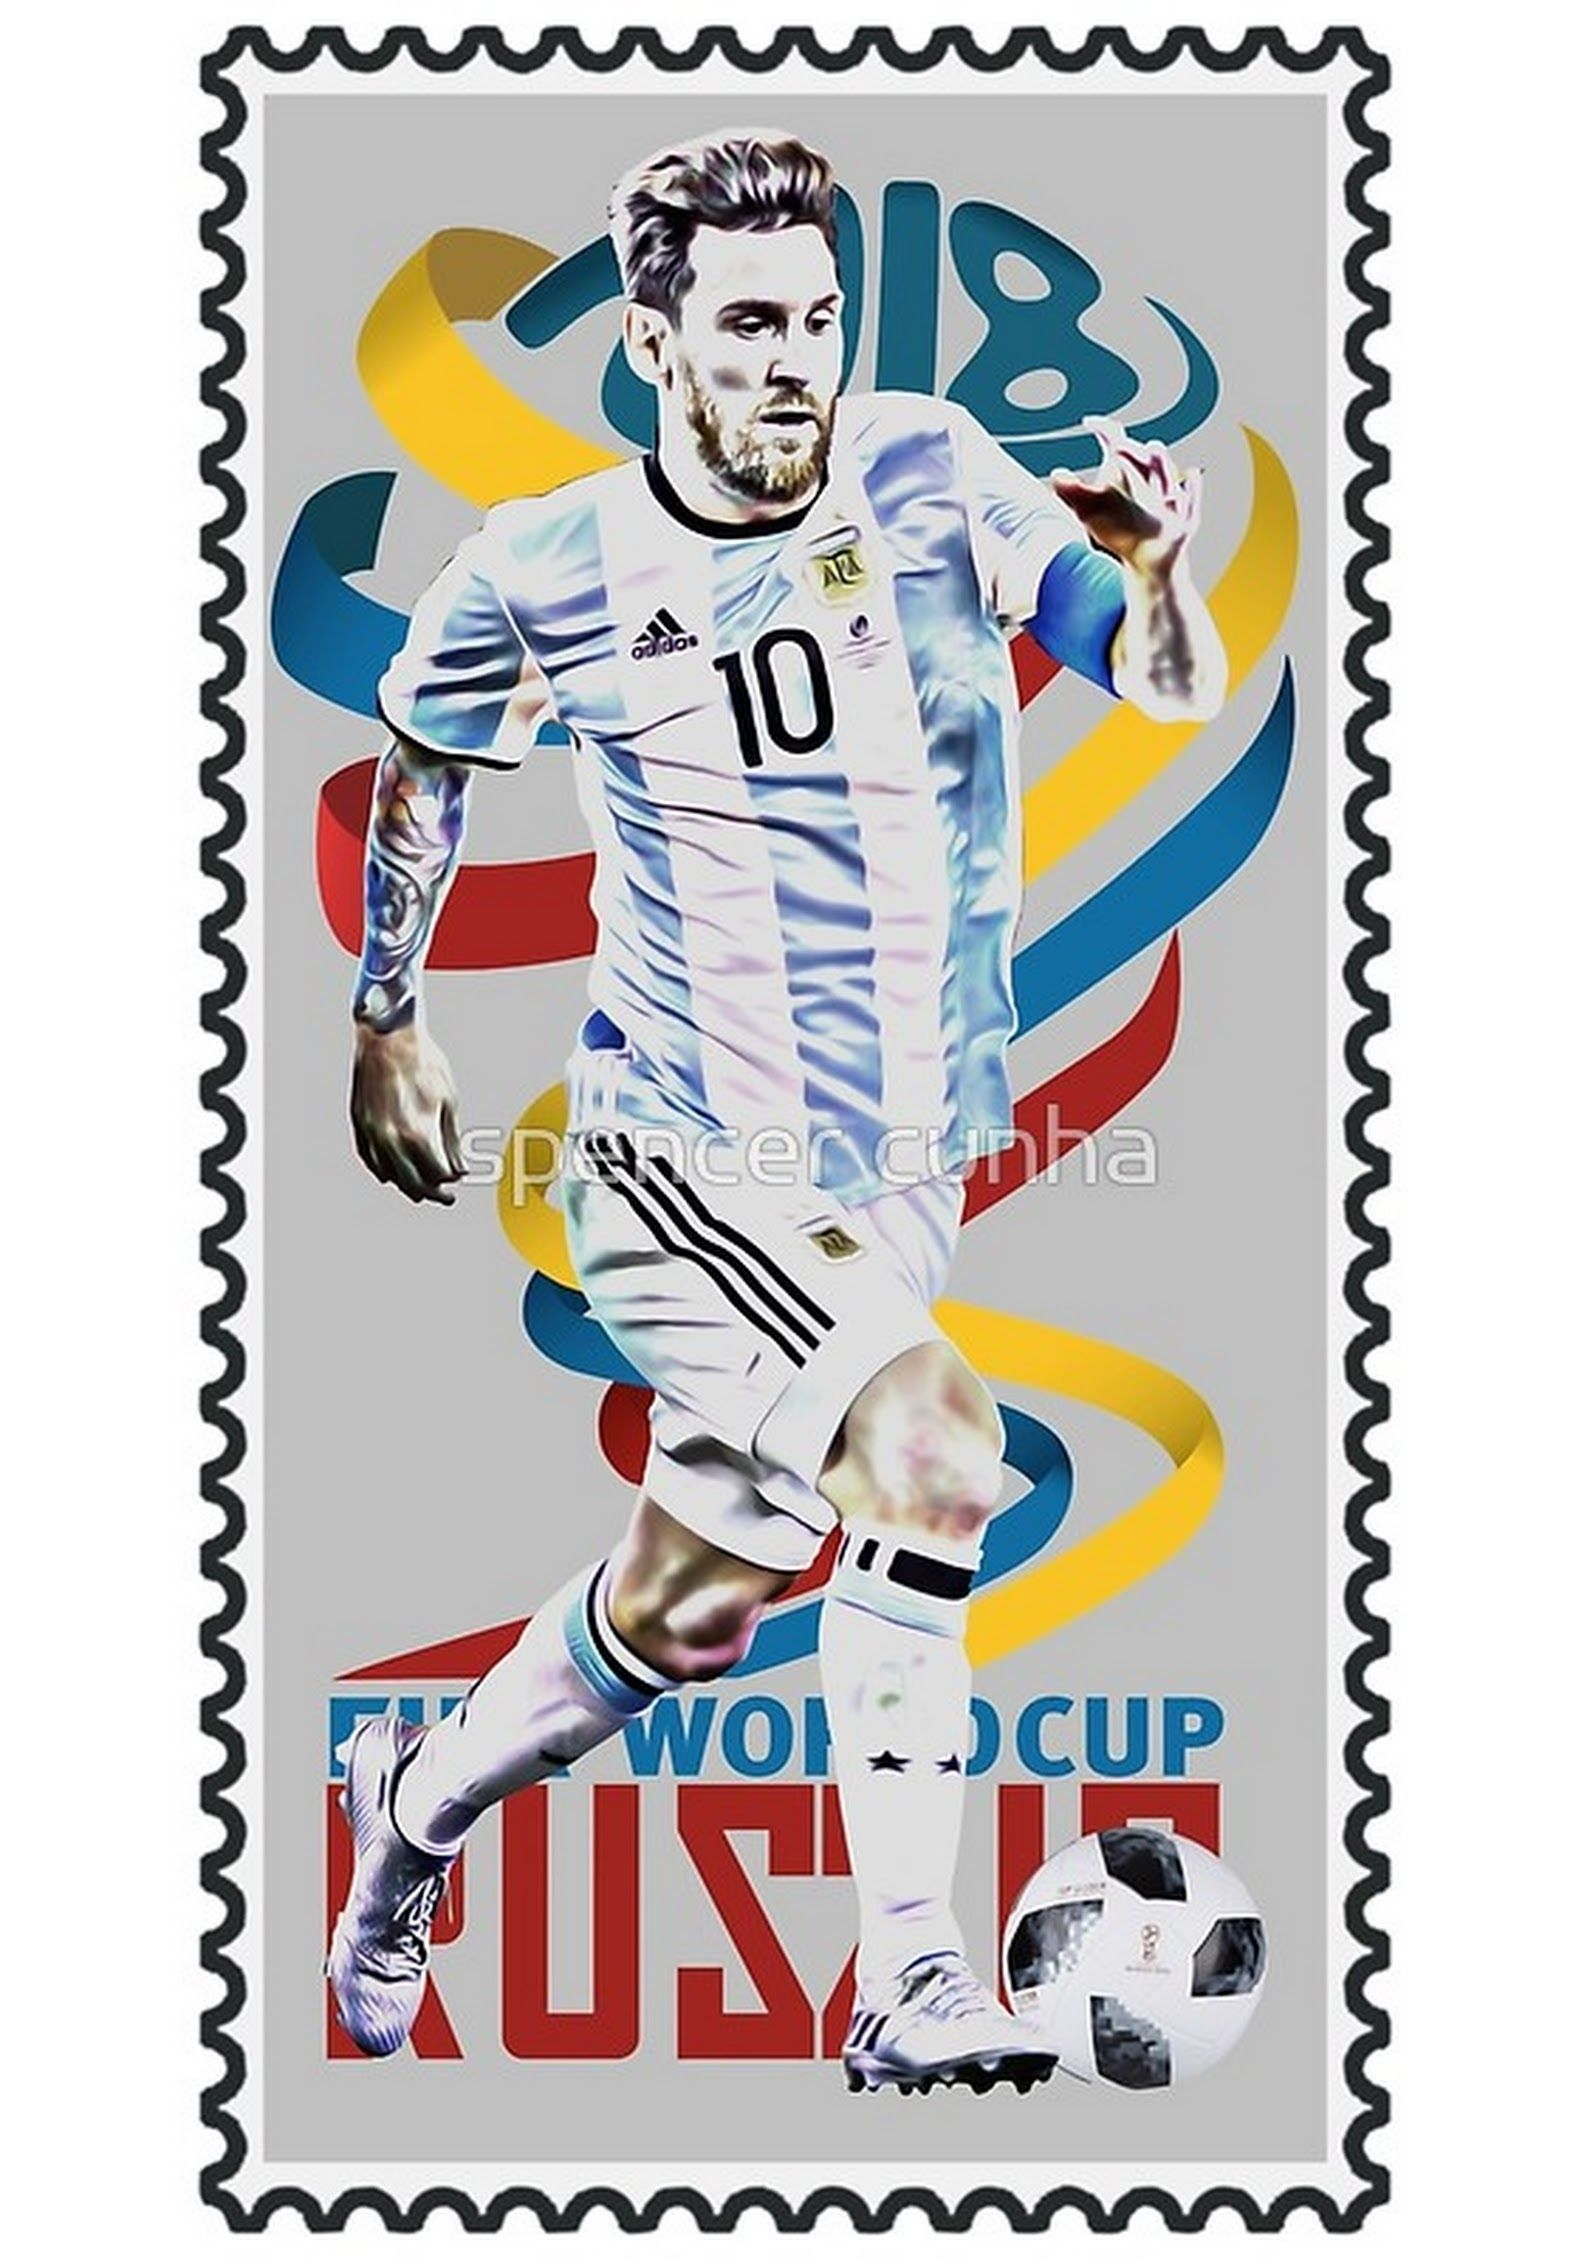 Postage stamps for the World Cup 2018 4